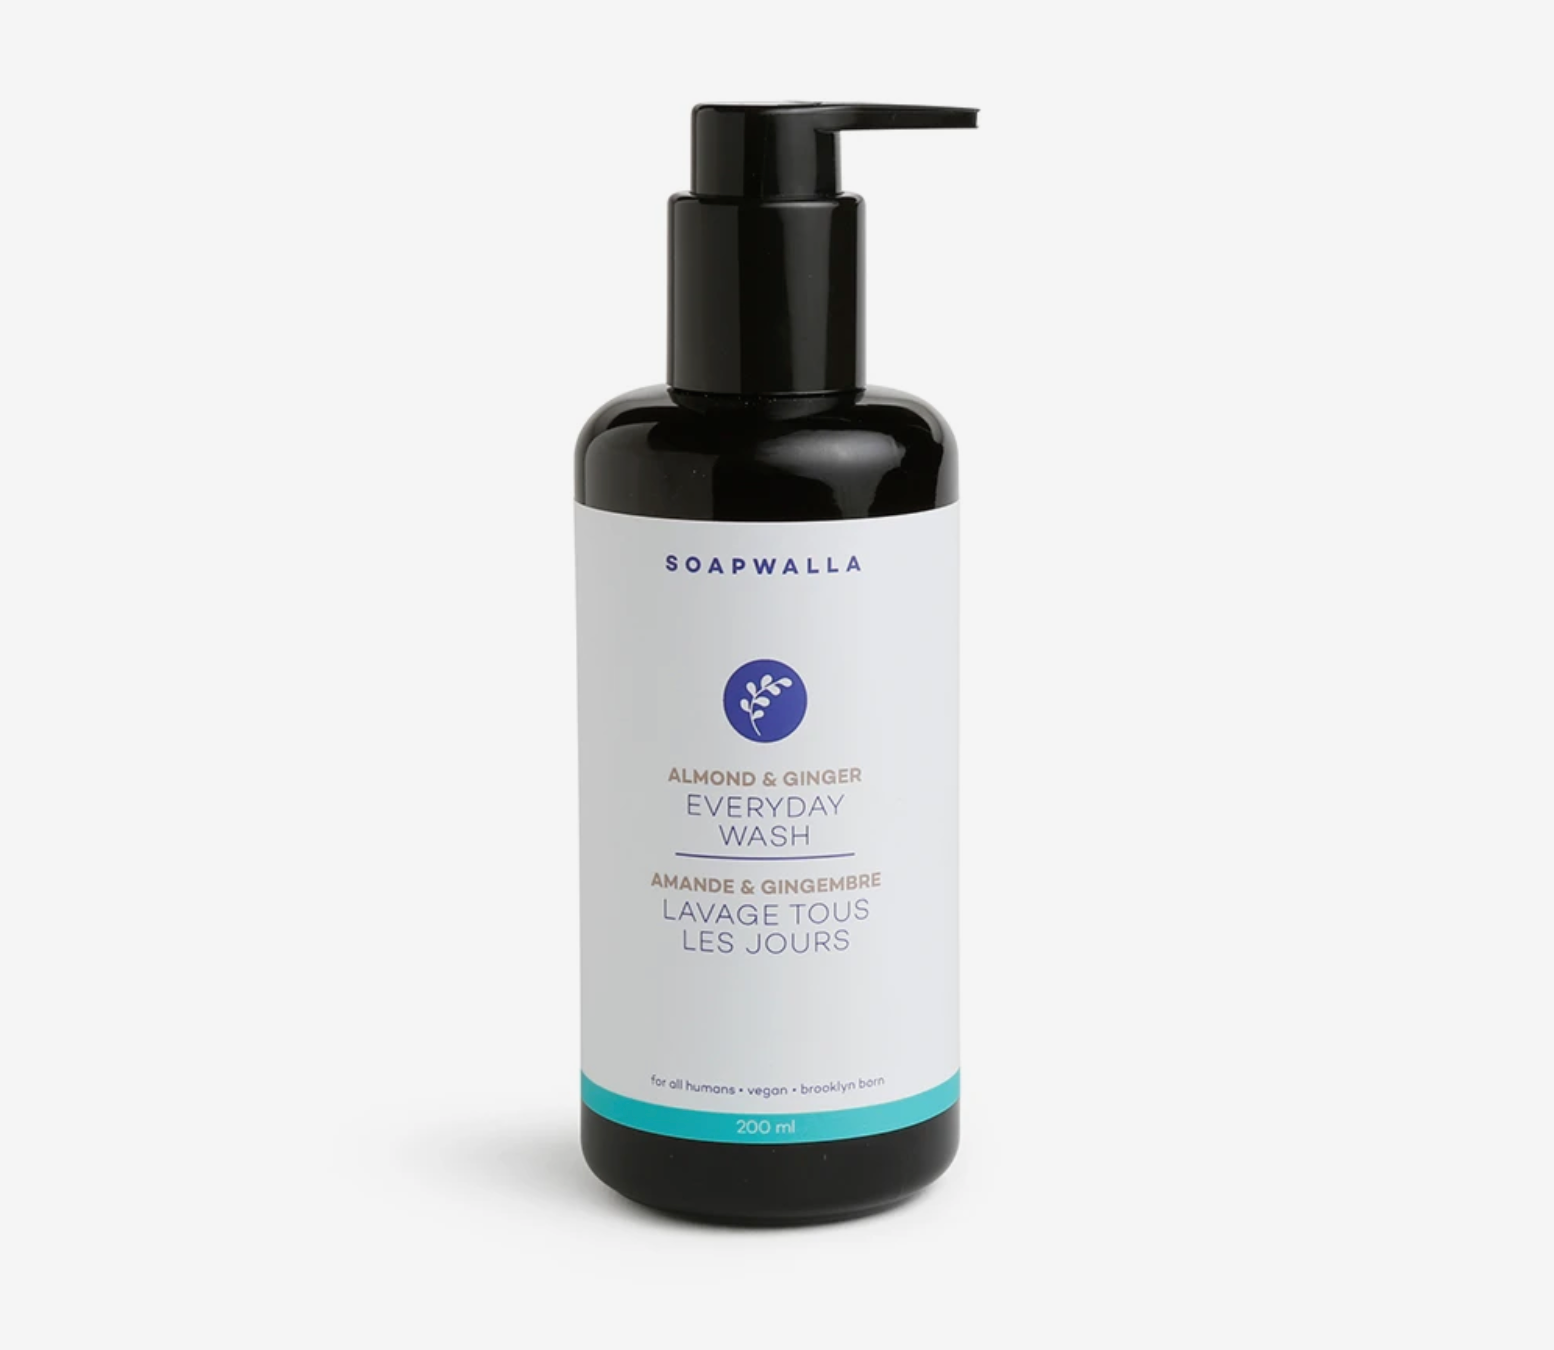 Soapwalla Almond & Ginger Everyday Wash